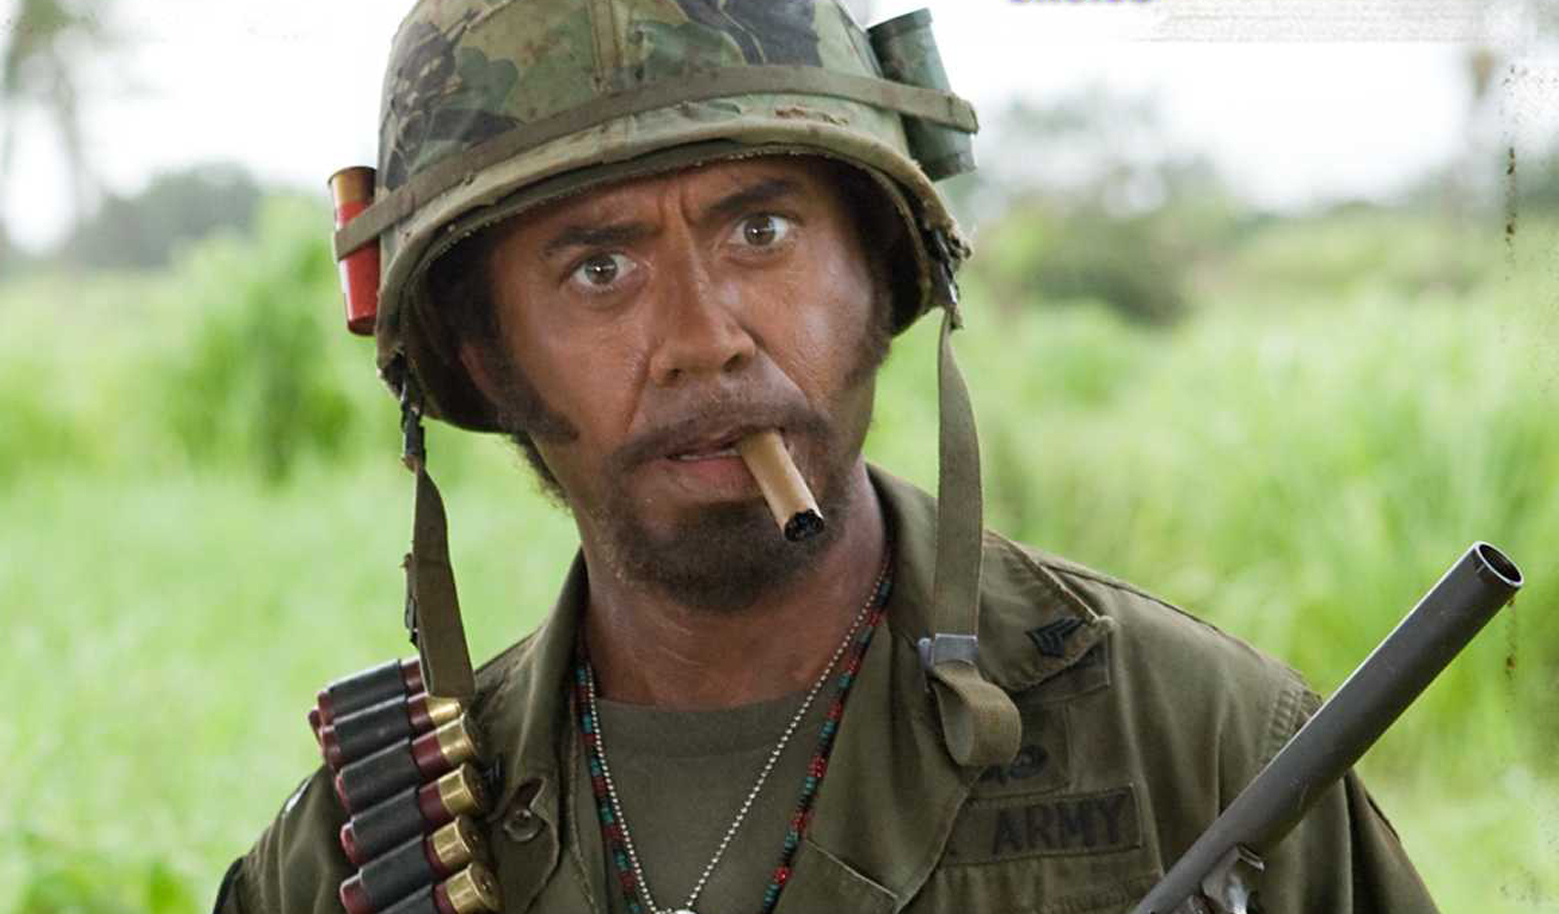 Robert-Downey-Jnr-Tropic-Thunder.jpg